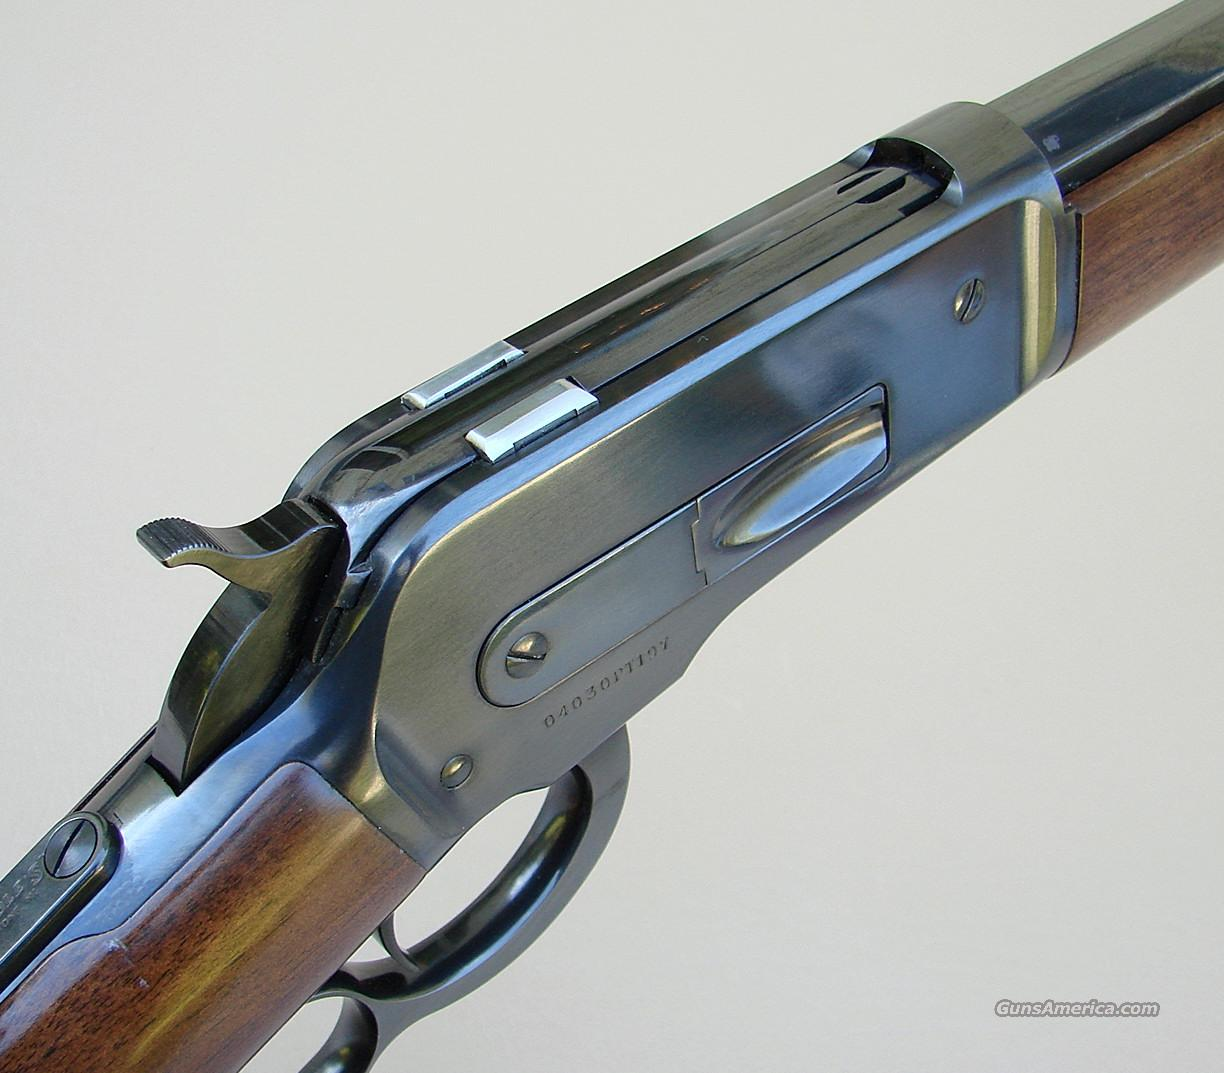 Browning 1886 Winchester 45-70 Rifle with Marbles Tang Sight  Guns > Rifles > Browning Rifles > Lever Action